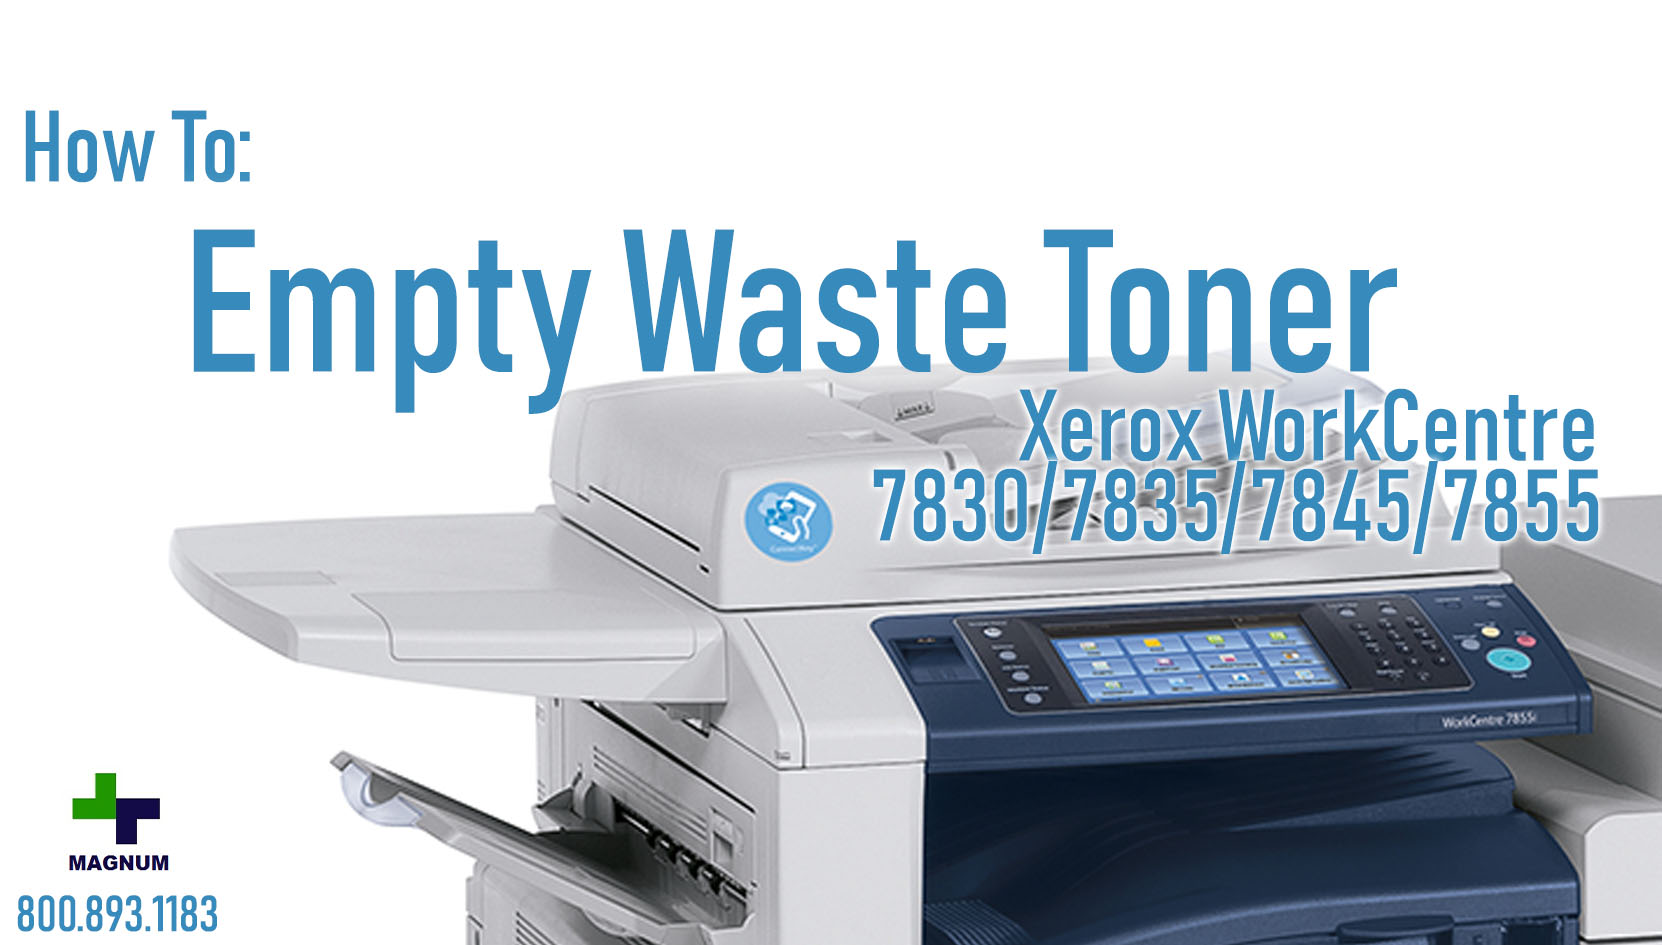 How To: Empty Waste Toner Container on WorkCentre 7830/7835